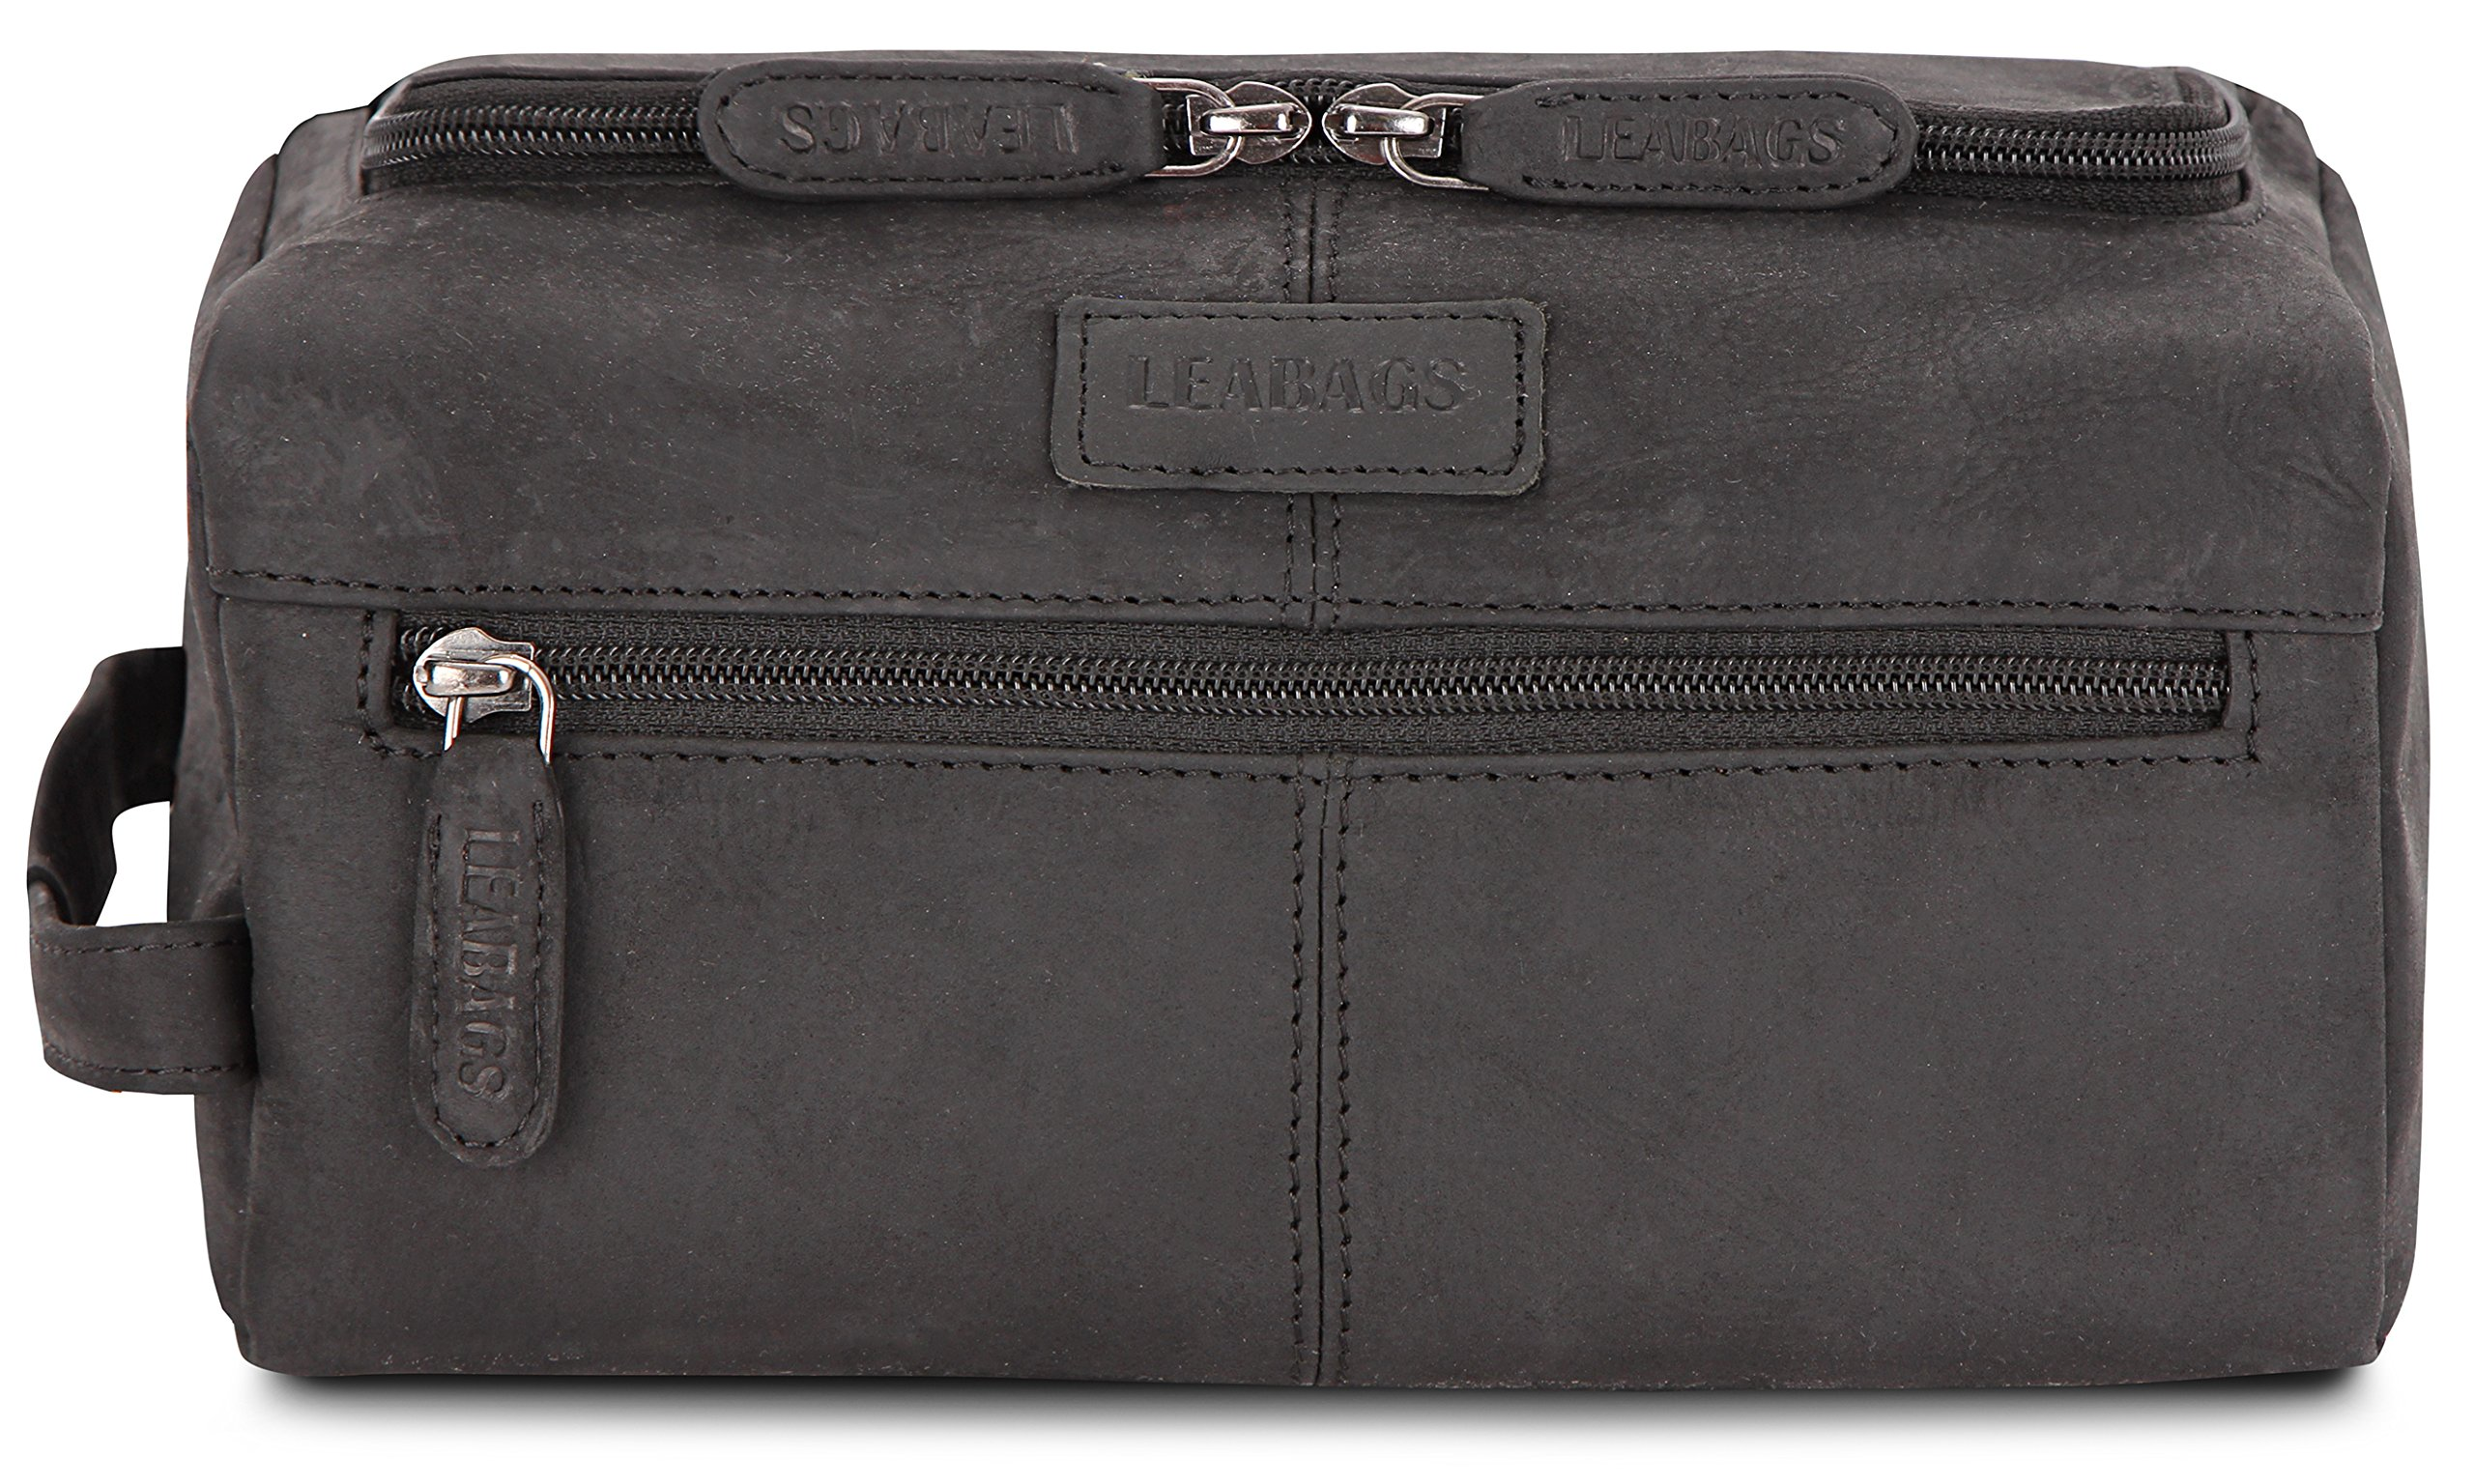 LEABAGS Palm Beach genuine buffalo leather toiletry bag in vintage style - Black